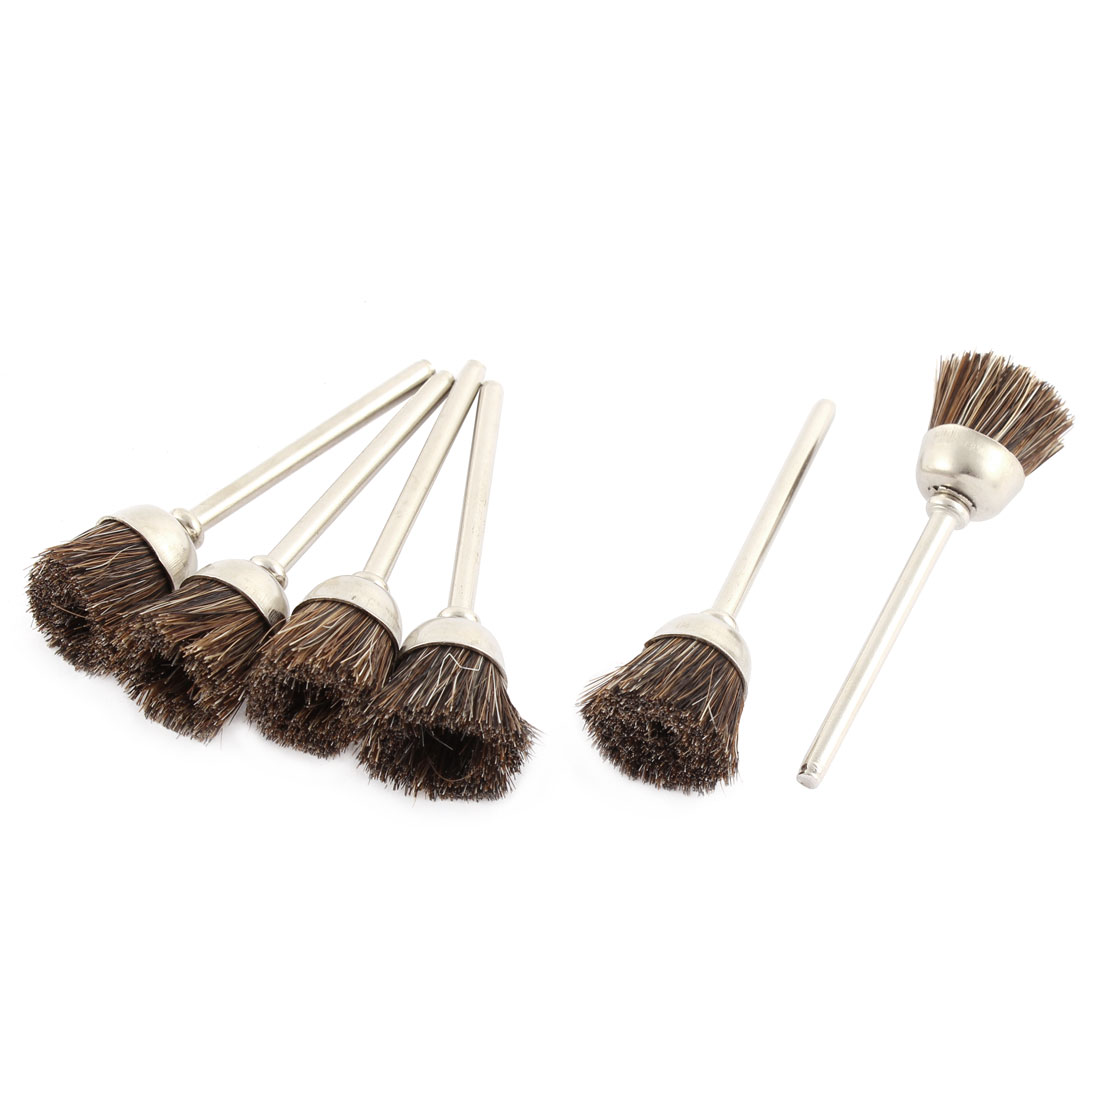 Brown Nylon Bristle Polishing Brushes Jewelry Cleaning Buffing Tools 6pcs